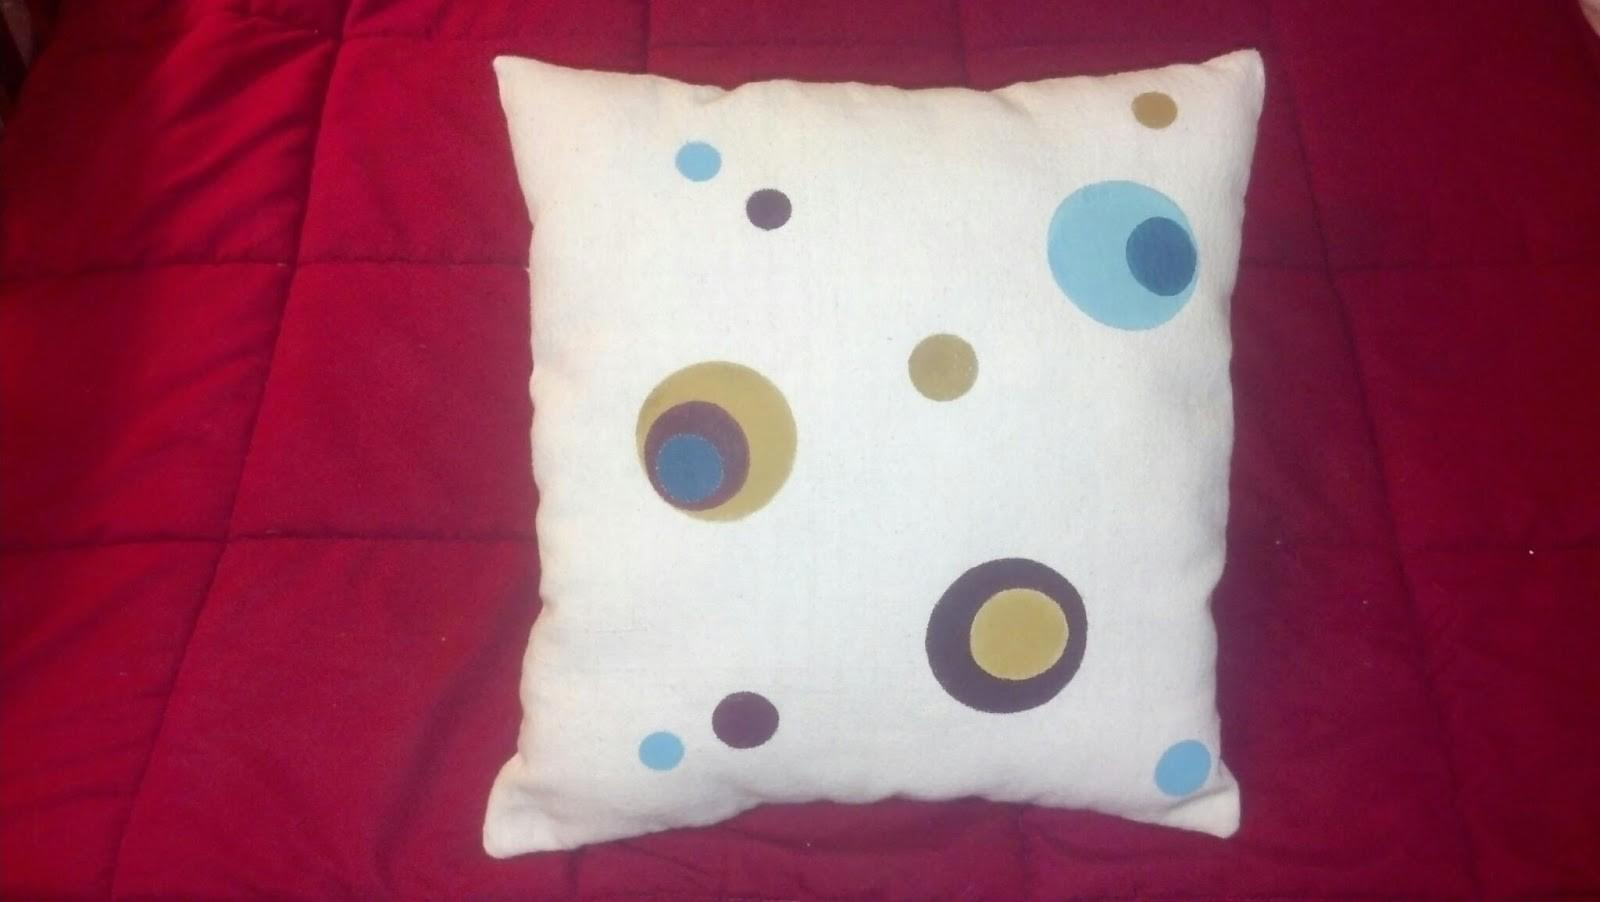 Creative Insomnia New Artistic Painted Pillow